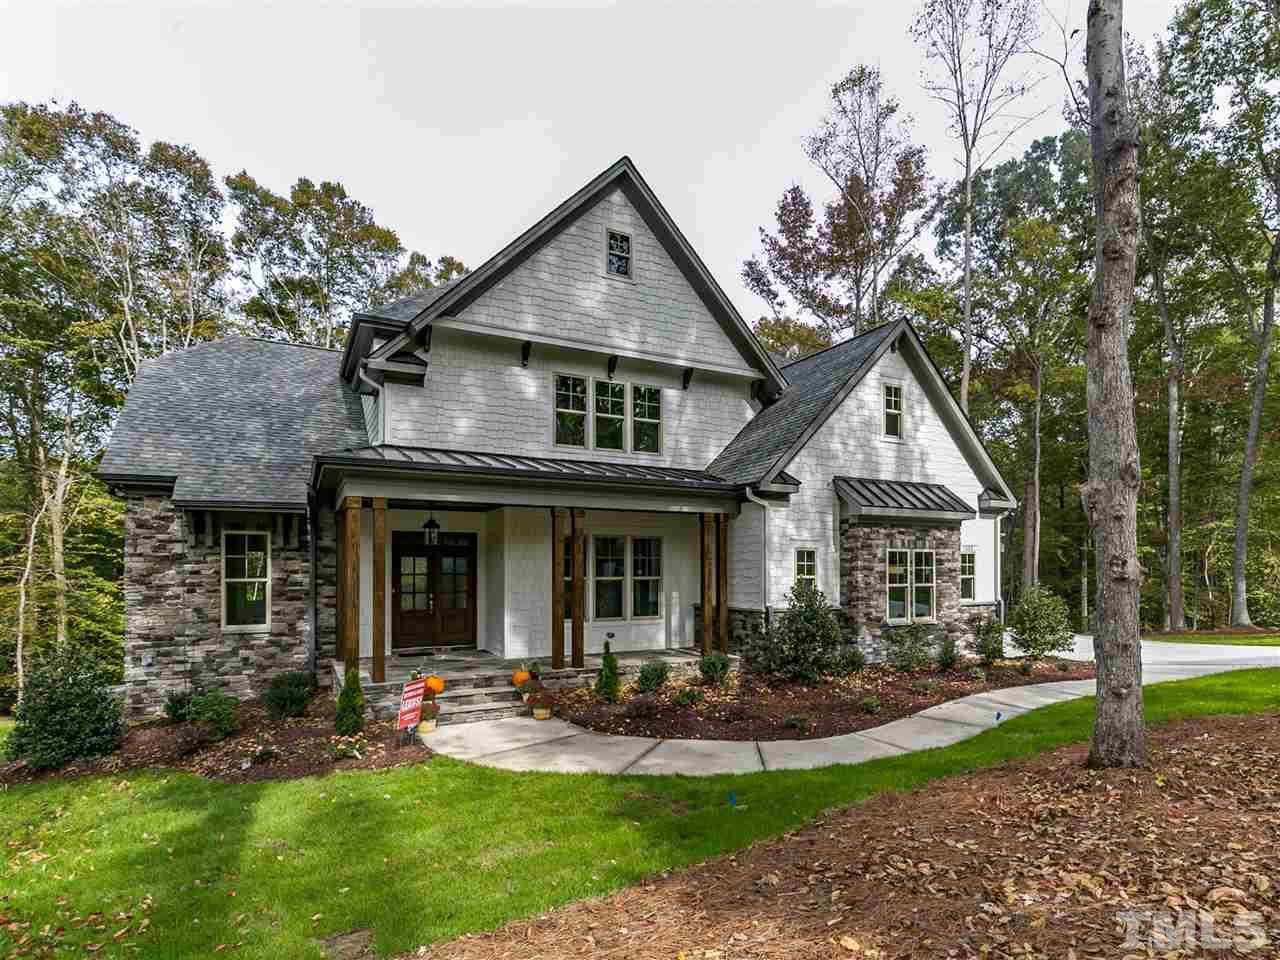 wake county luxury homes for sale 750k 800k phillip johnson group exp realty phillip johnson group exp realty